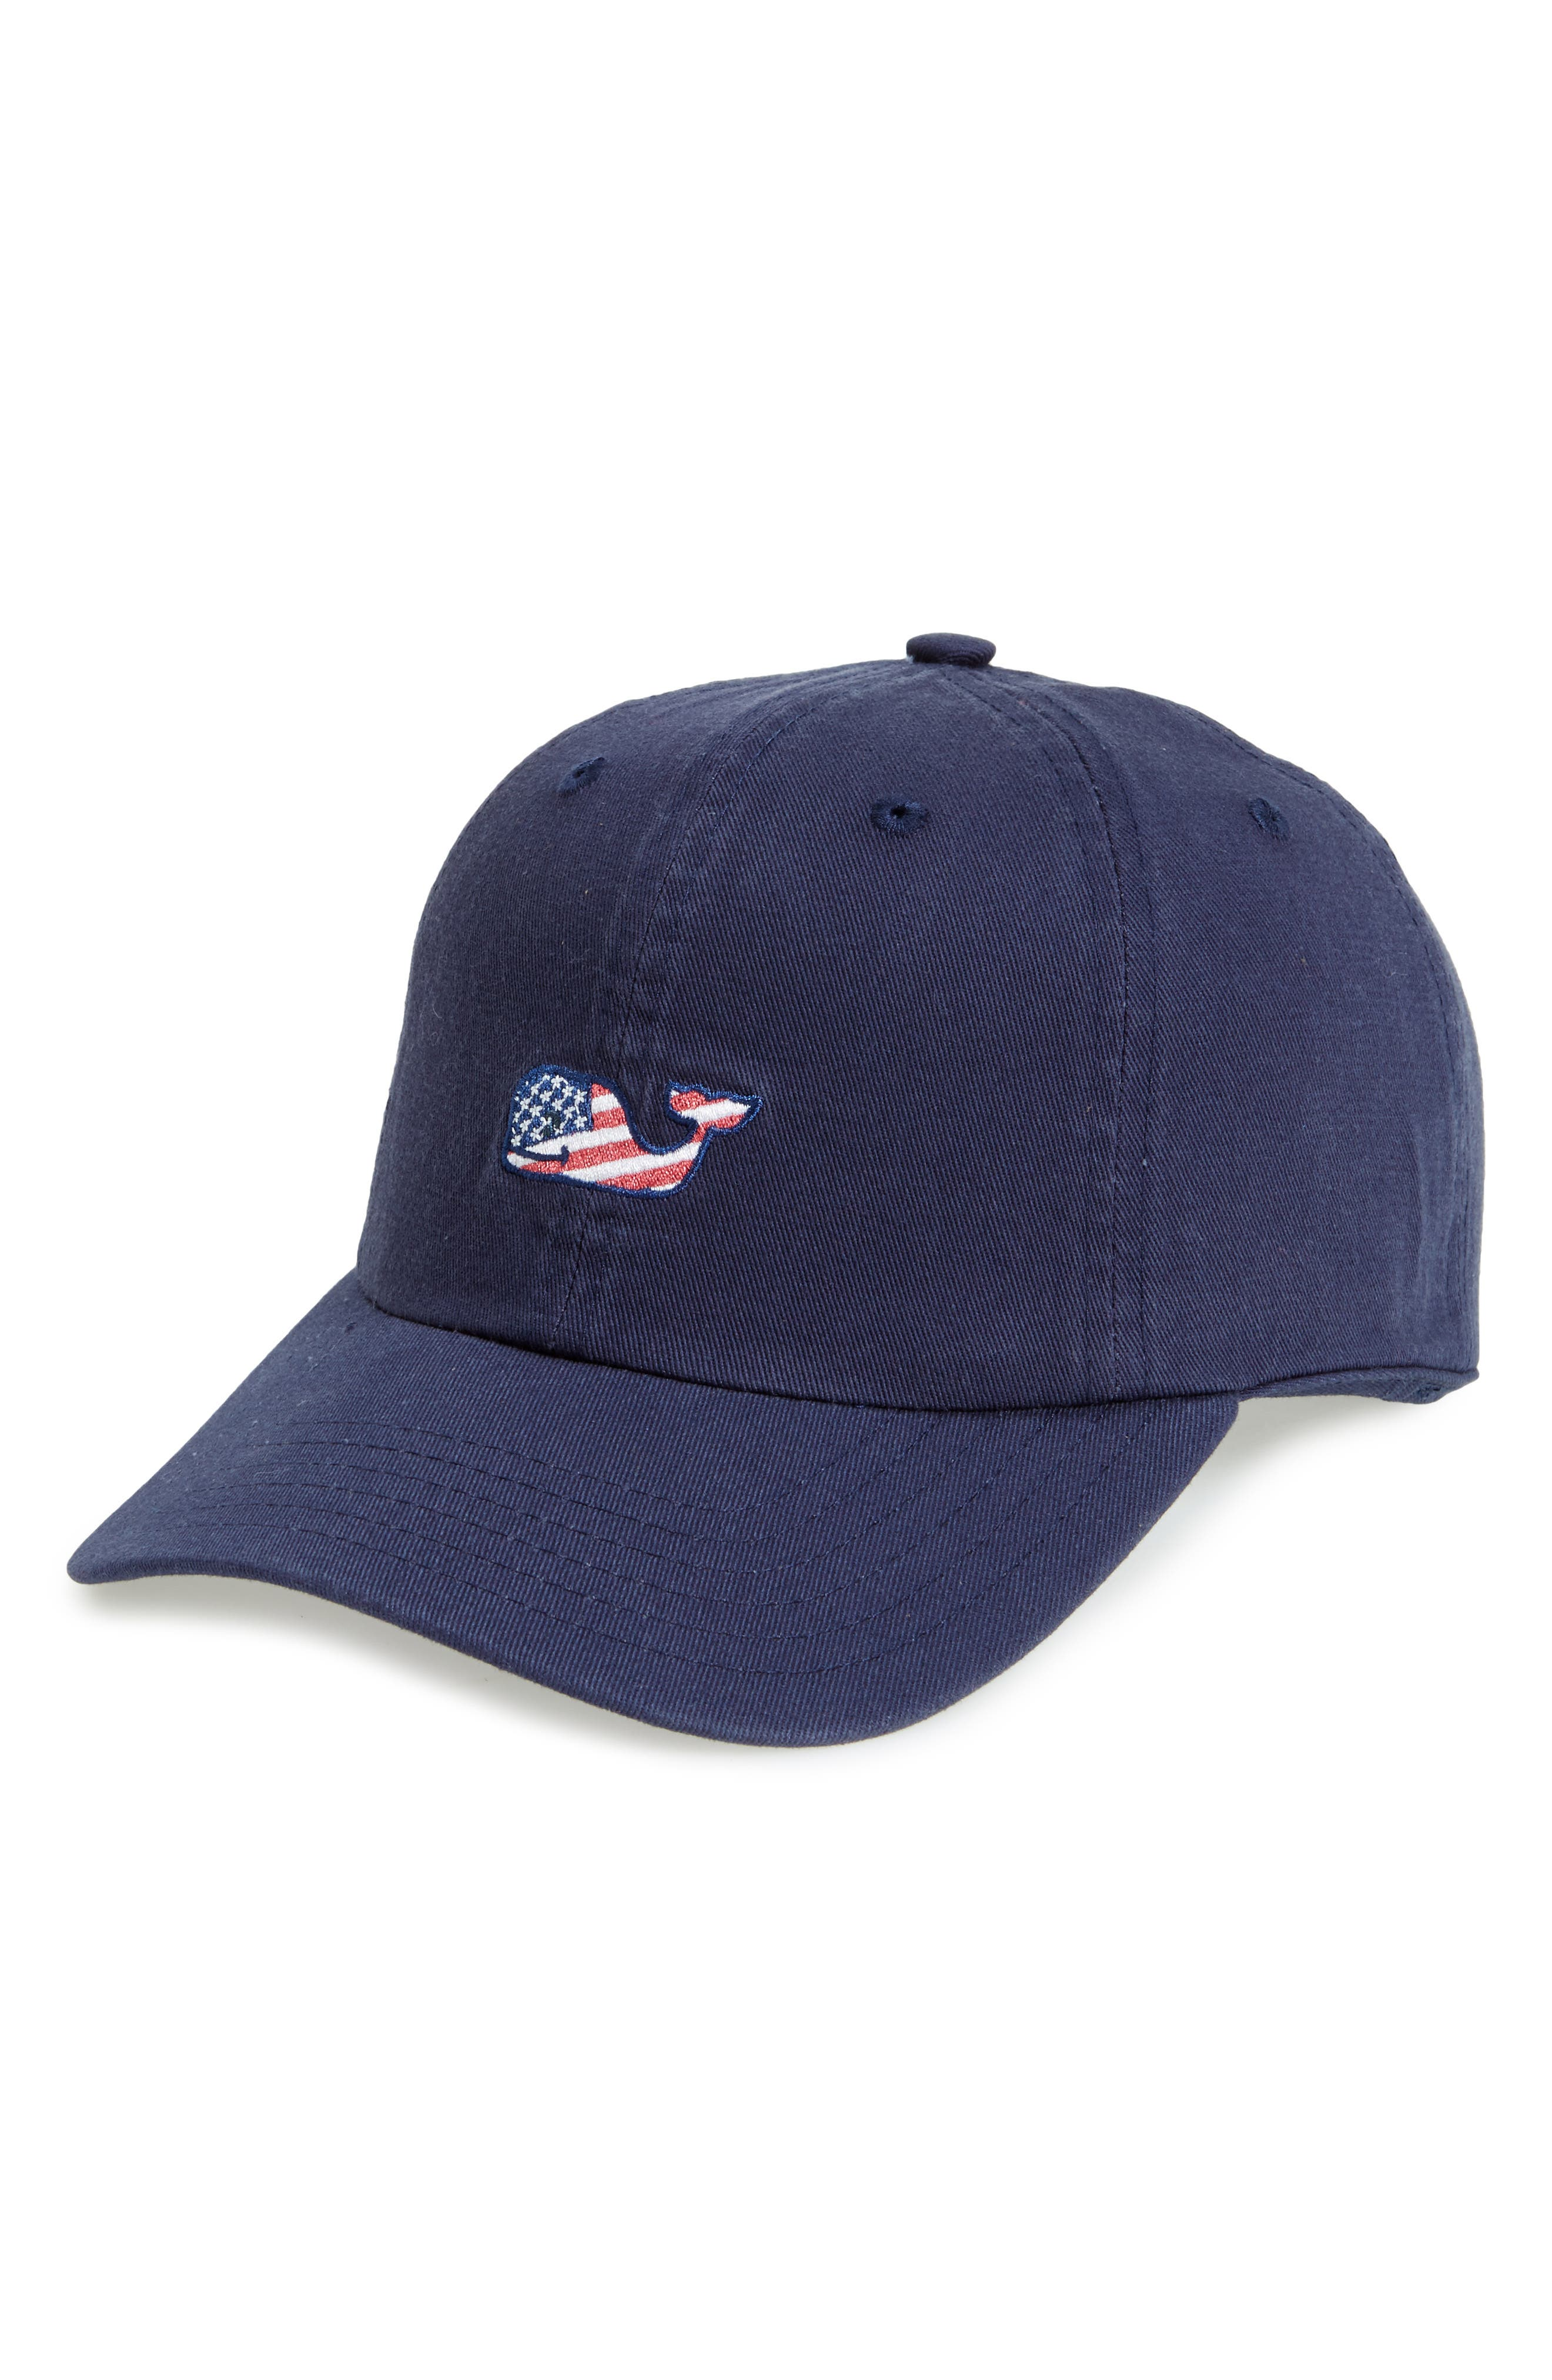 Vineyard Vines 'Flag Whale Logo' Baseball Cap